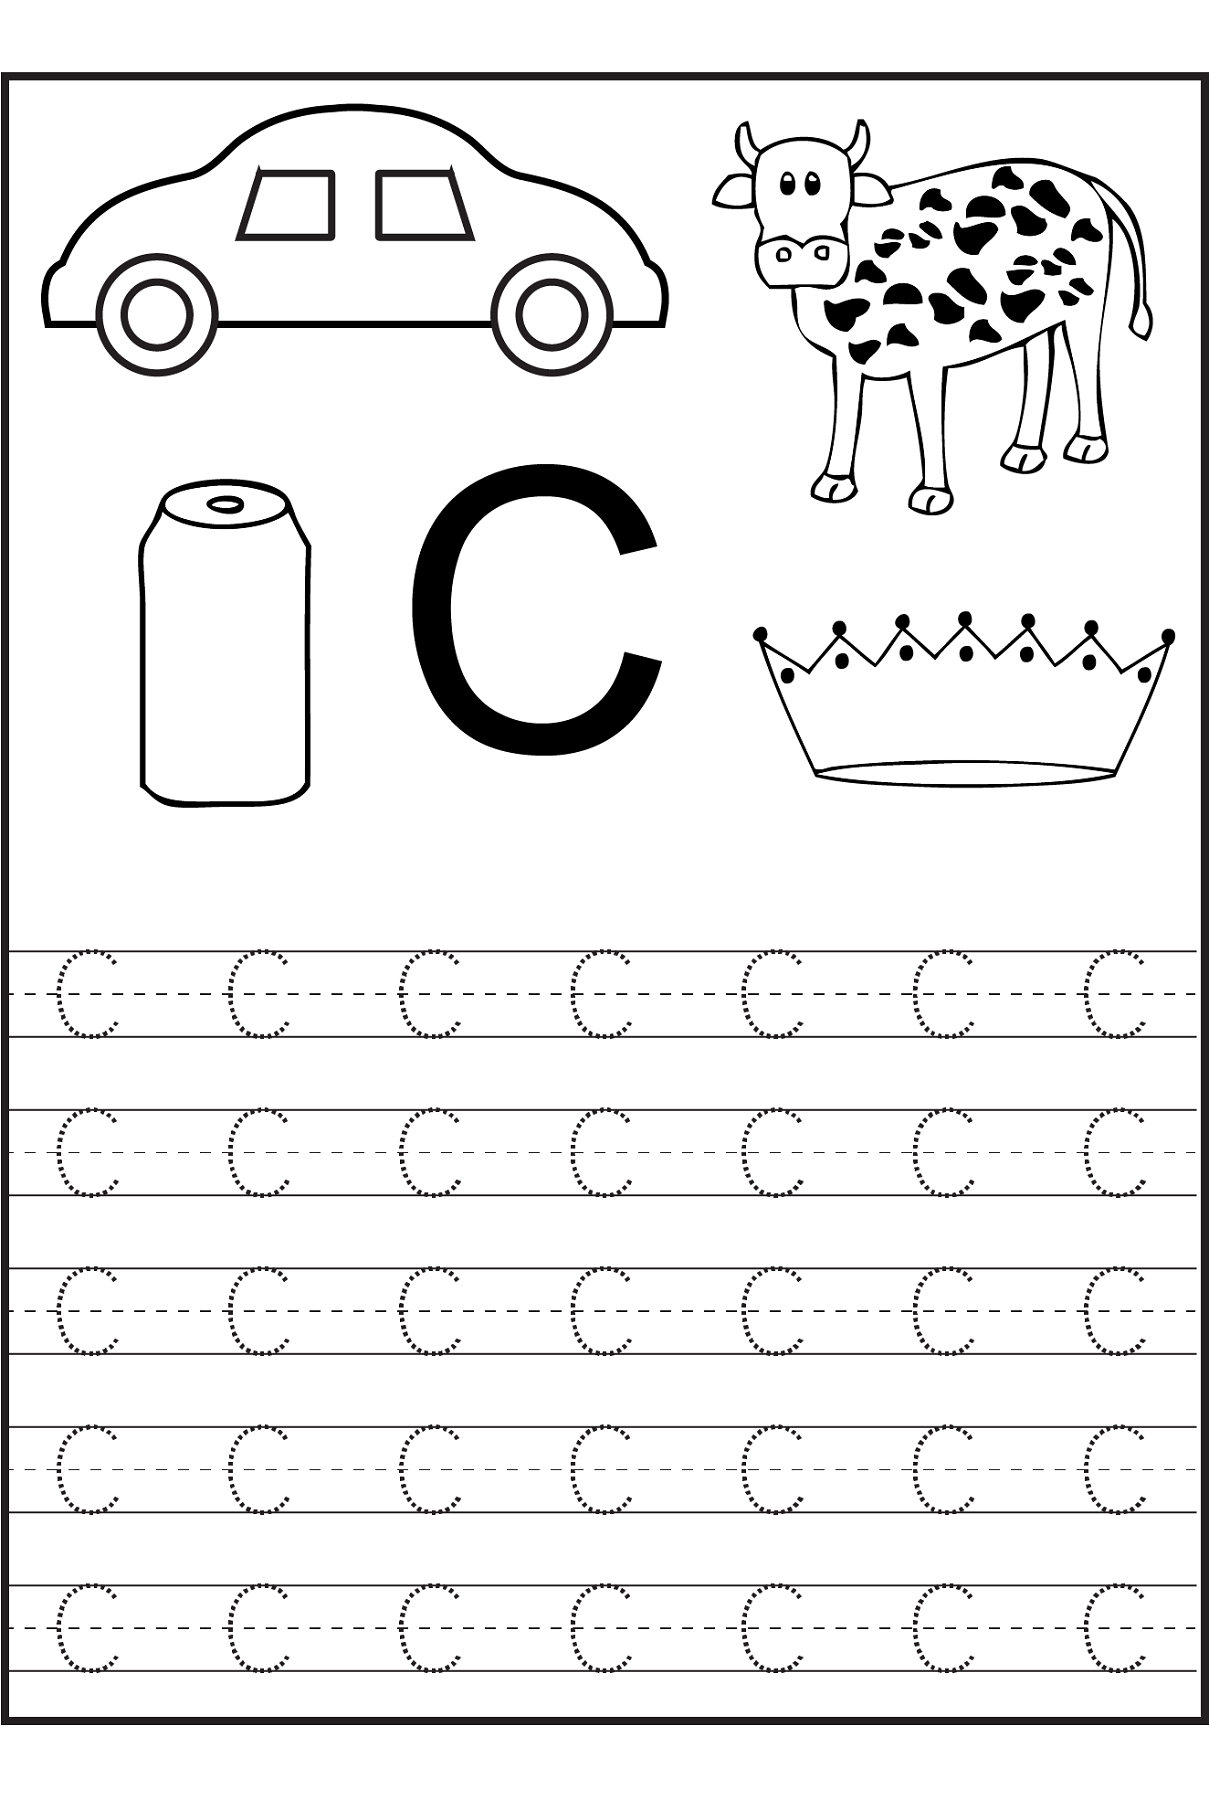 trace the letter c worksheets  alphabet and numbers learning  trace the letter c worksheets  activity shelter